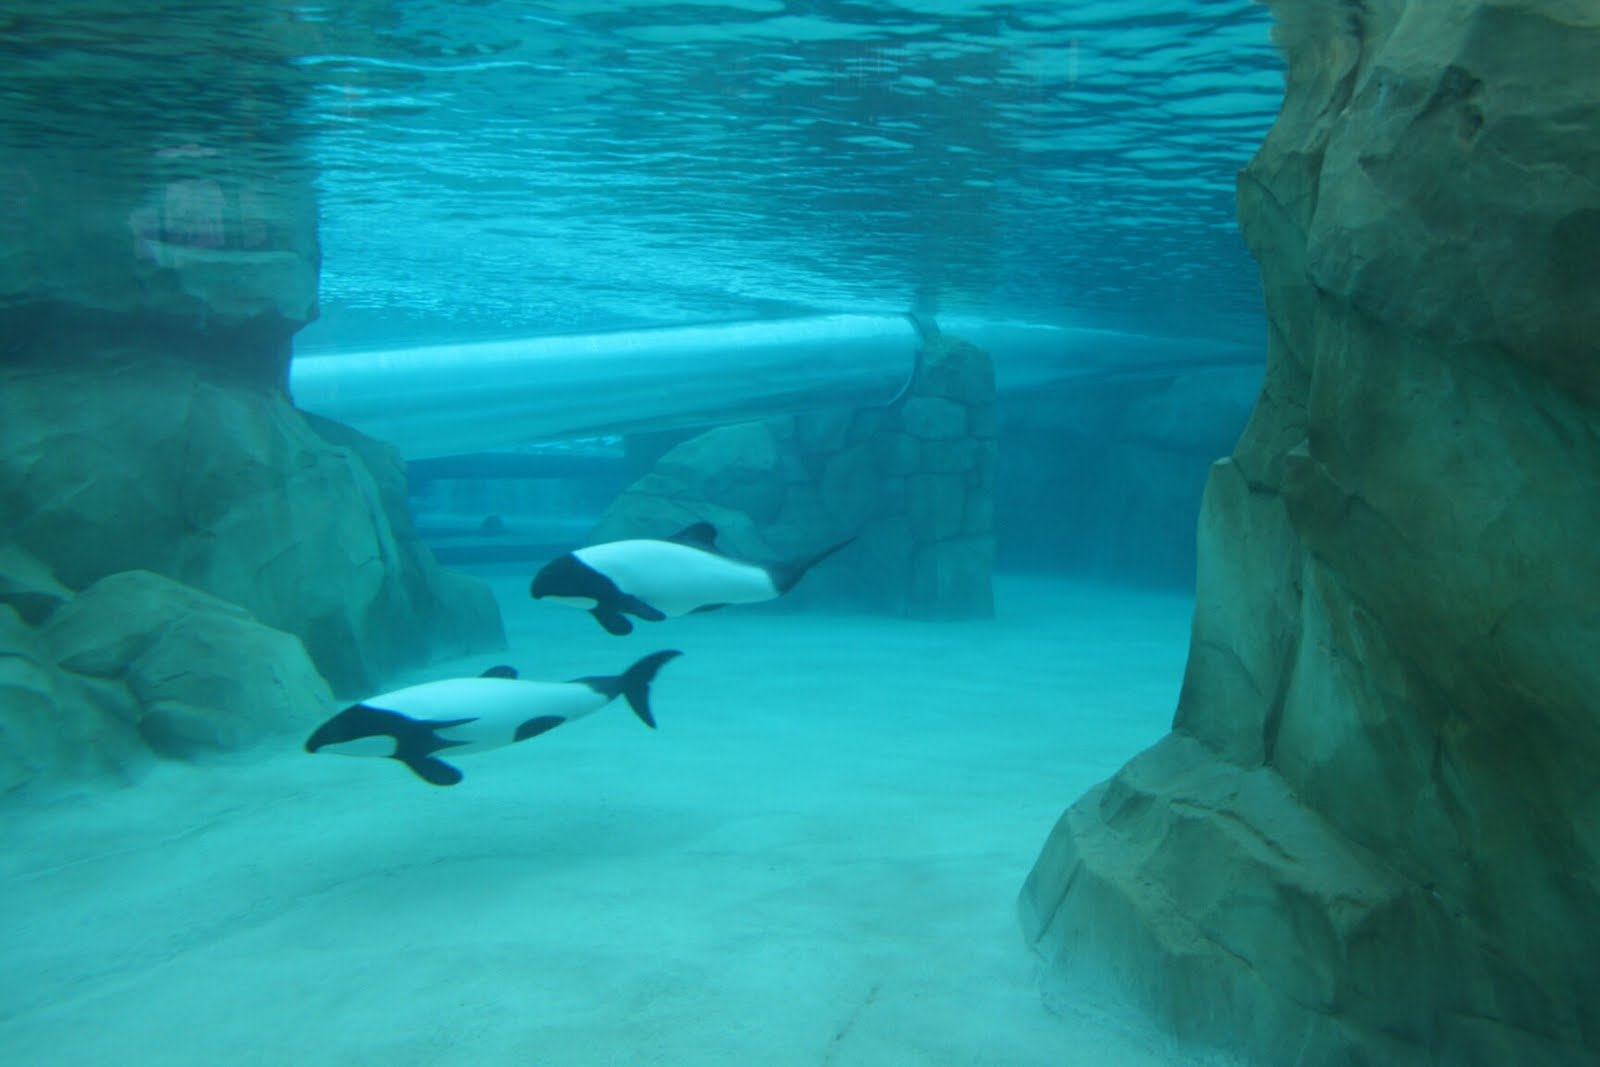 Orlando water parks they are not baby killer whales